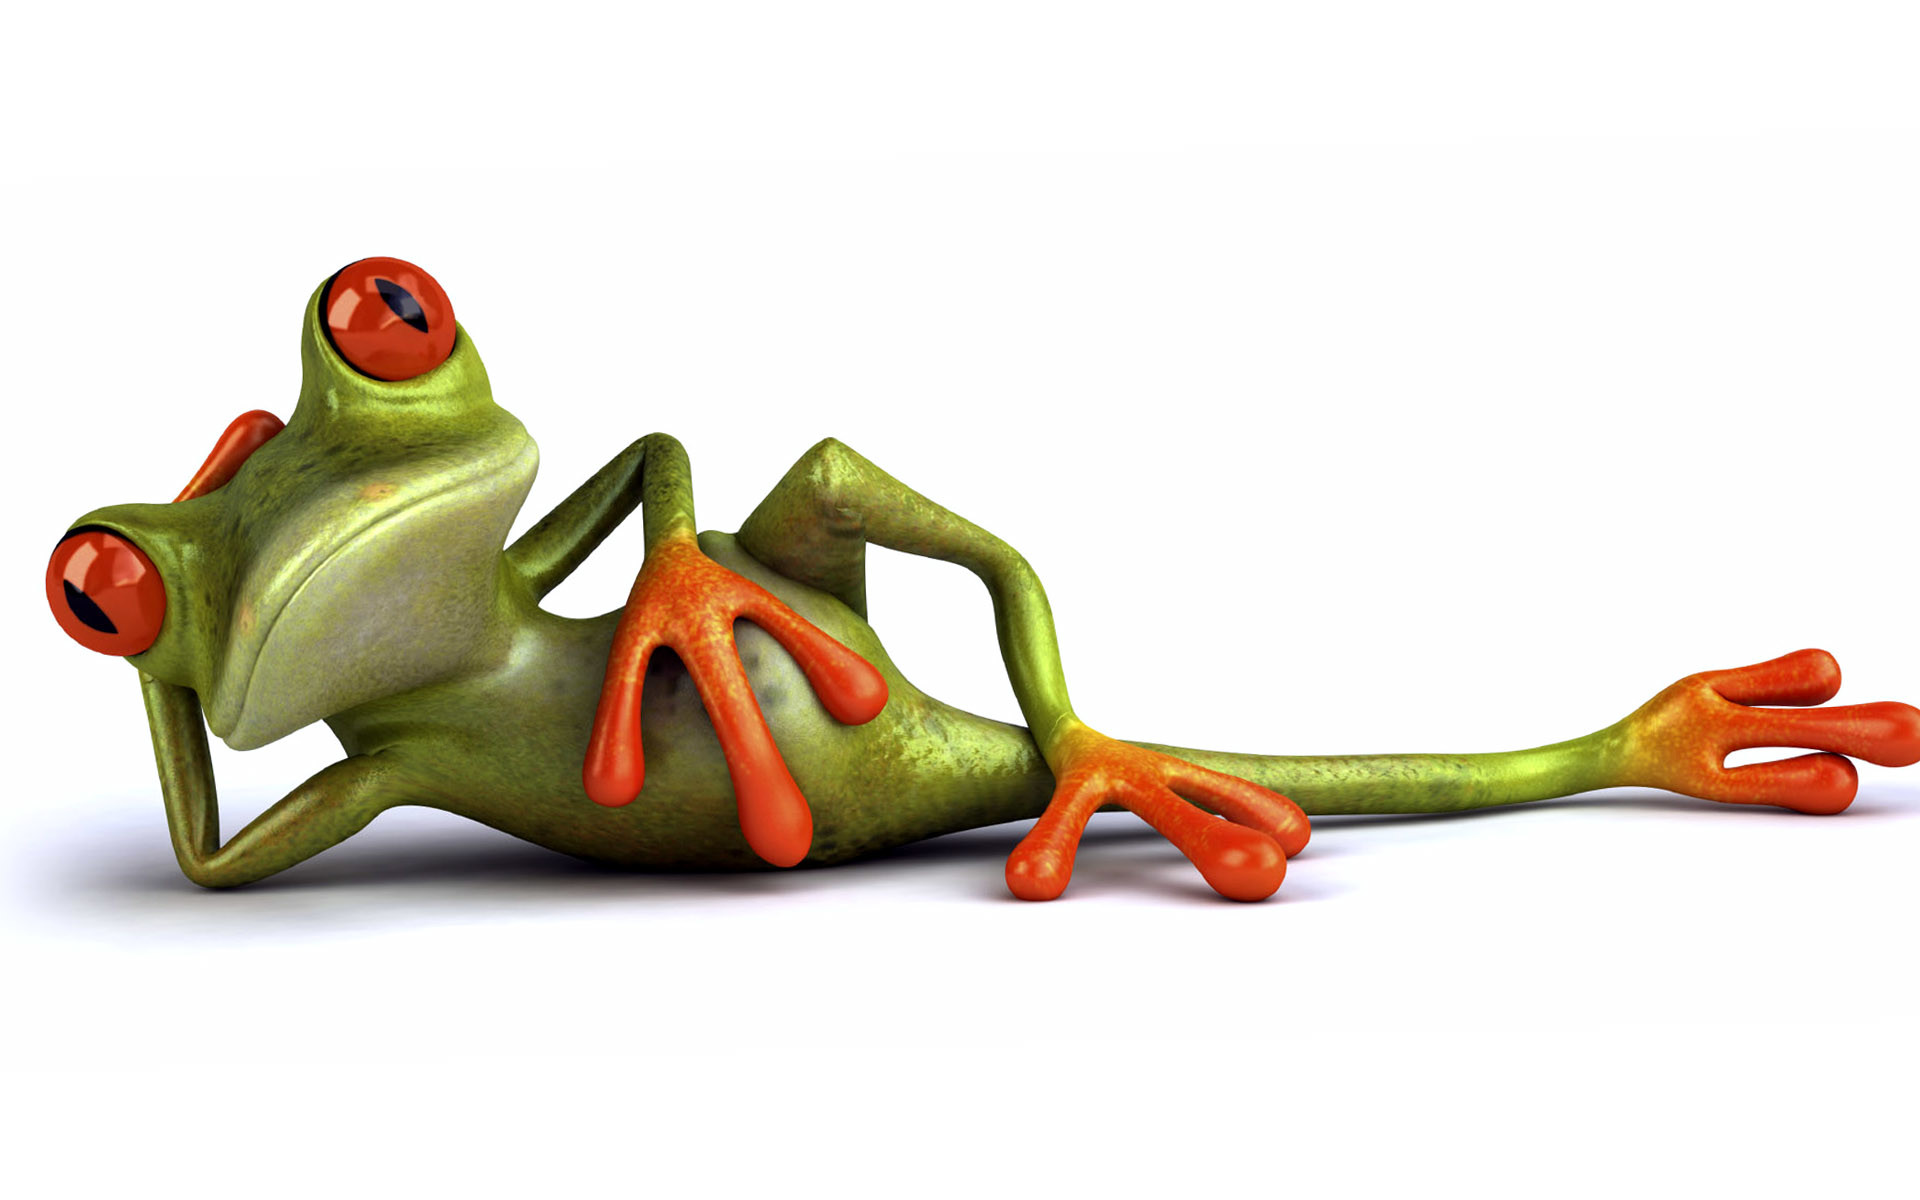 Funny tree frog pictures Frog or Horse? - m